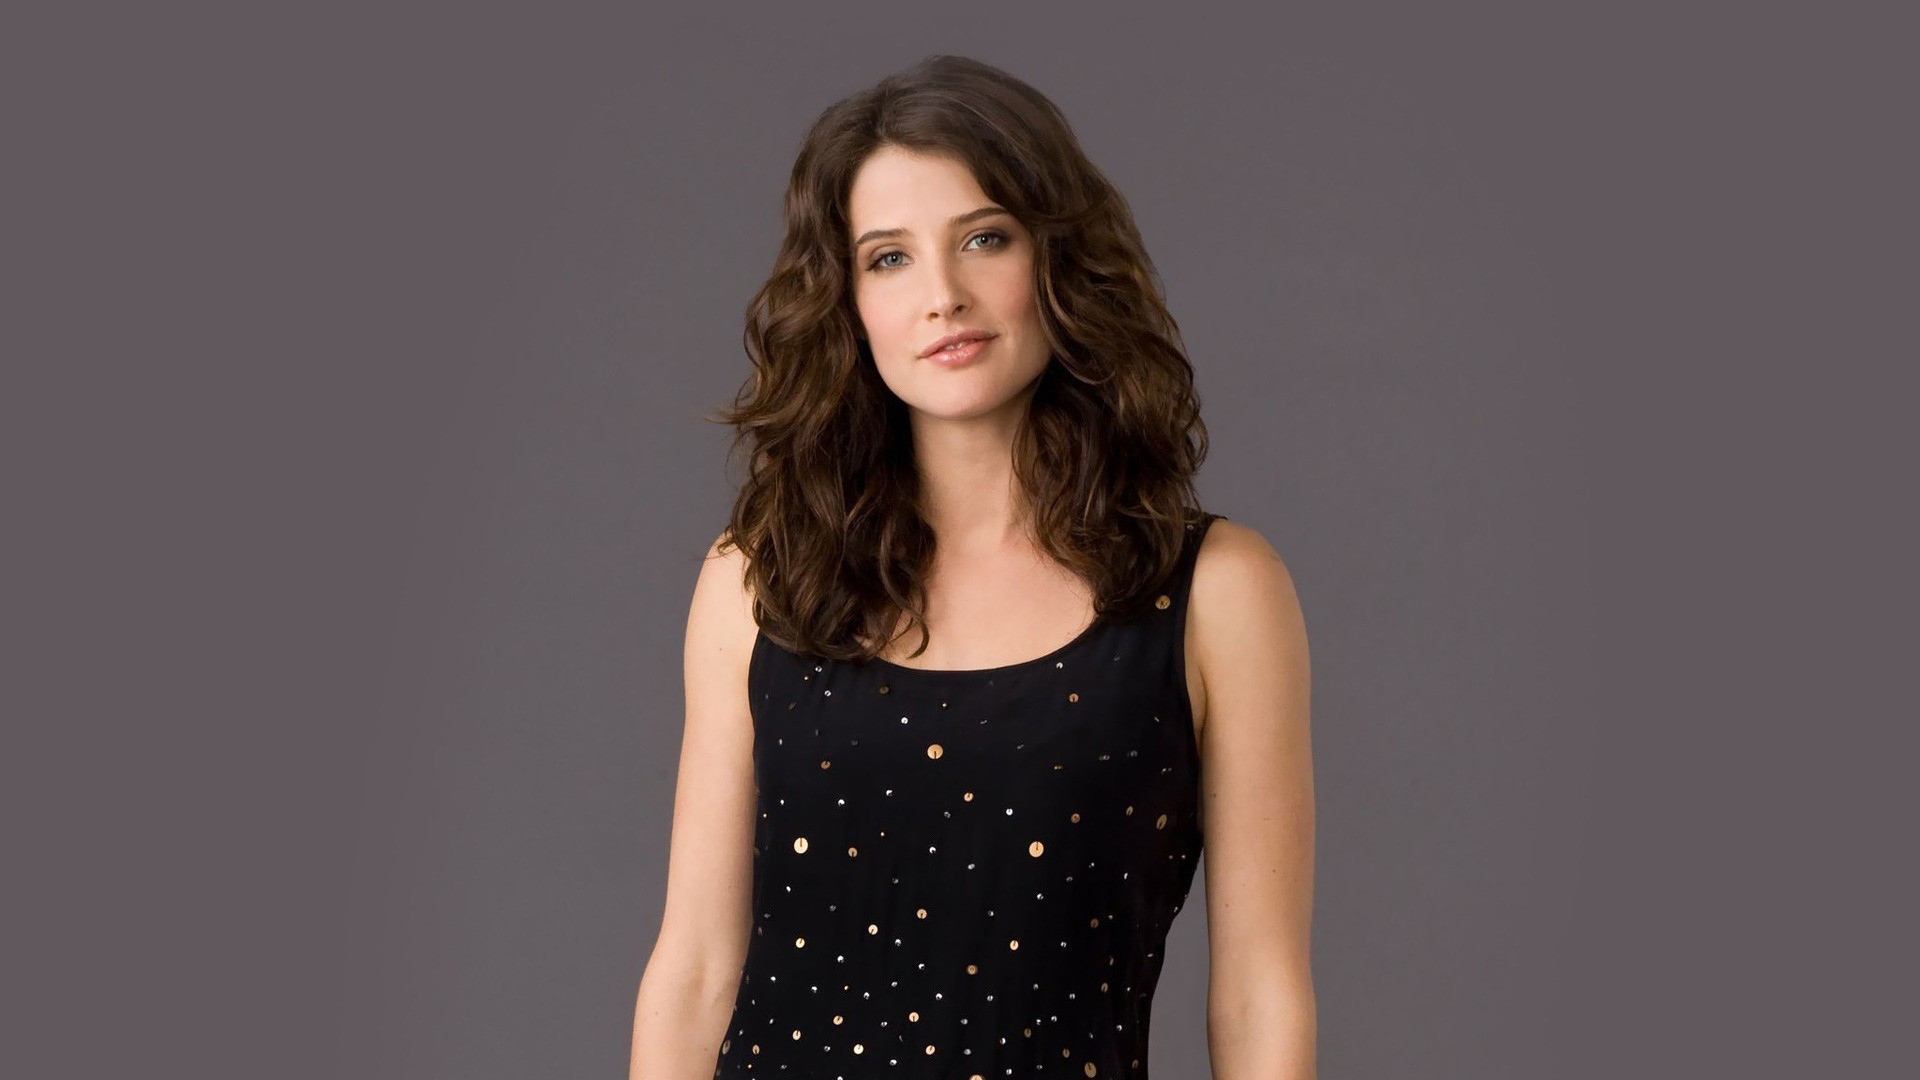 1920x1080 - Cobie Smulders Wallpapers 26